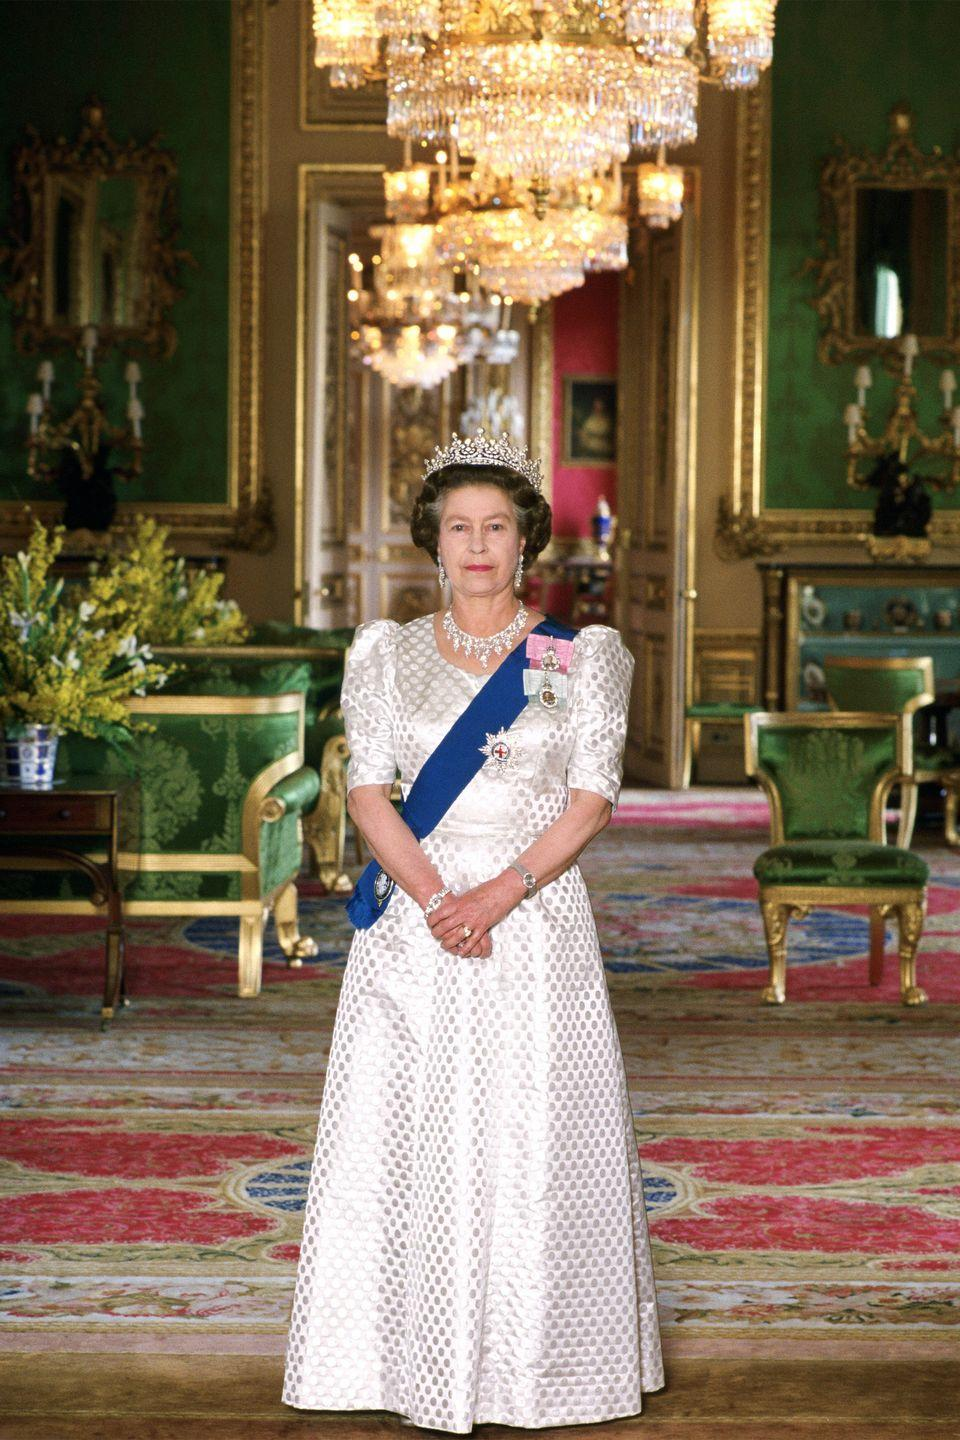 <p>The queen is photographed in the Green Room at Windsor Castle in a printed gown, diamond chandelier earrings, a silver watch, a diamond necklace, diamond bracelets, and a tiara.</p>